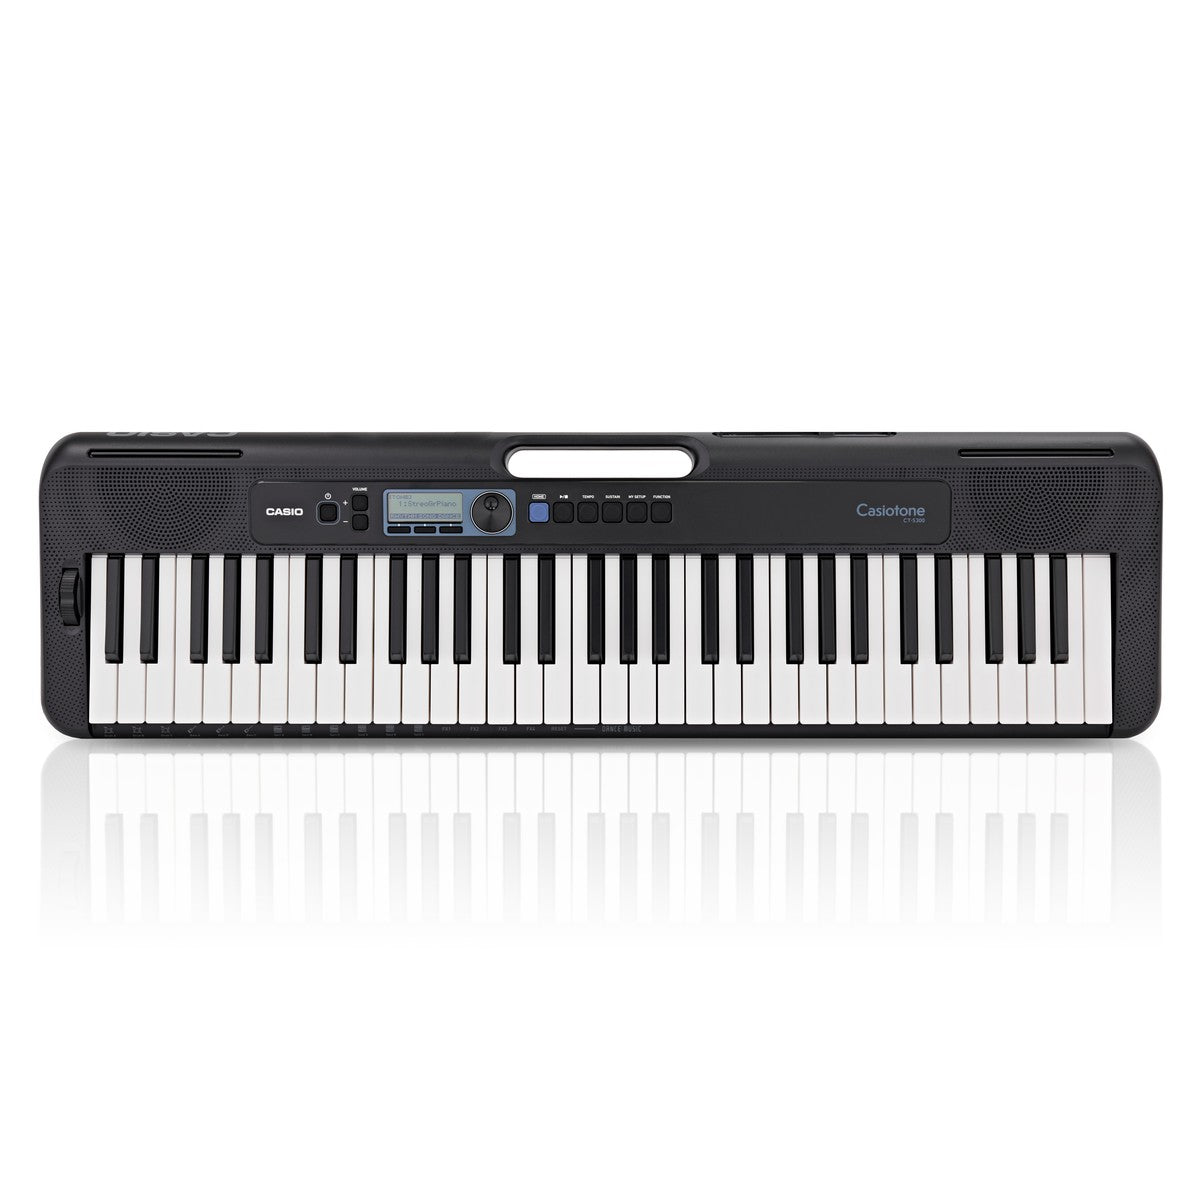 Casio CT-S300 Keyboard with Accessory Pack